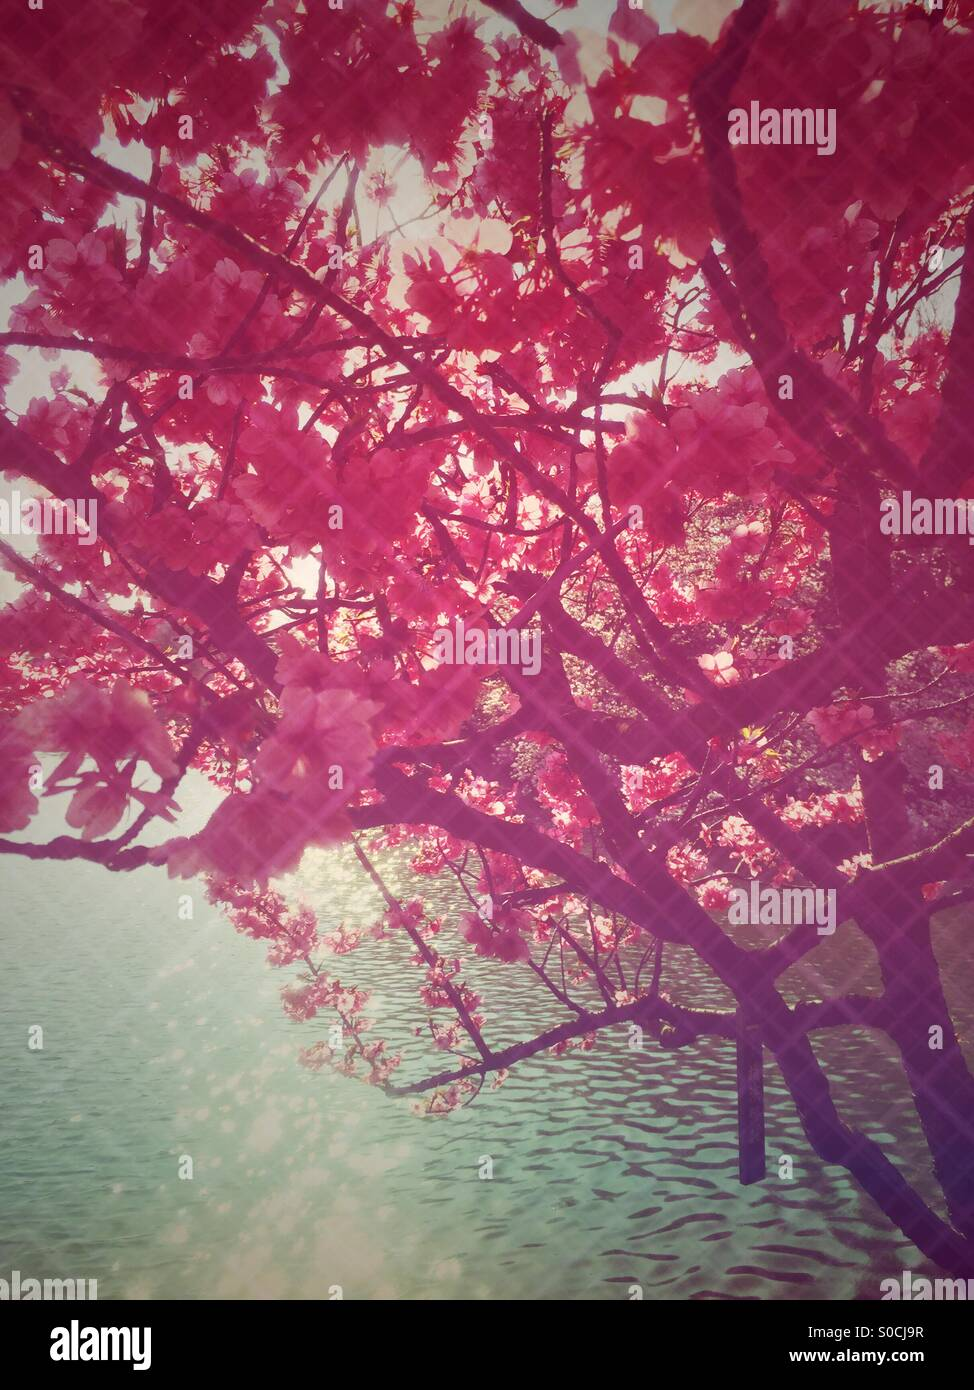 Pond with sunshine sparkling on the water surface, with backlit sakura or cherry blossom in a deep pink color. Diamond - Stock Image